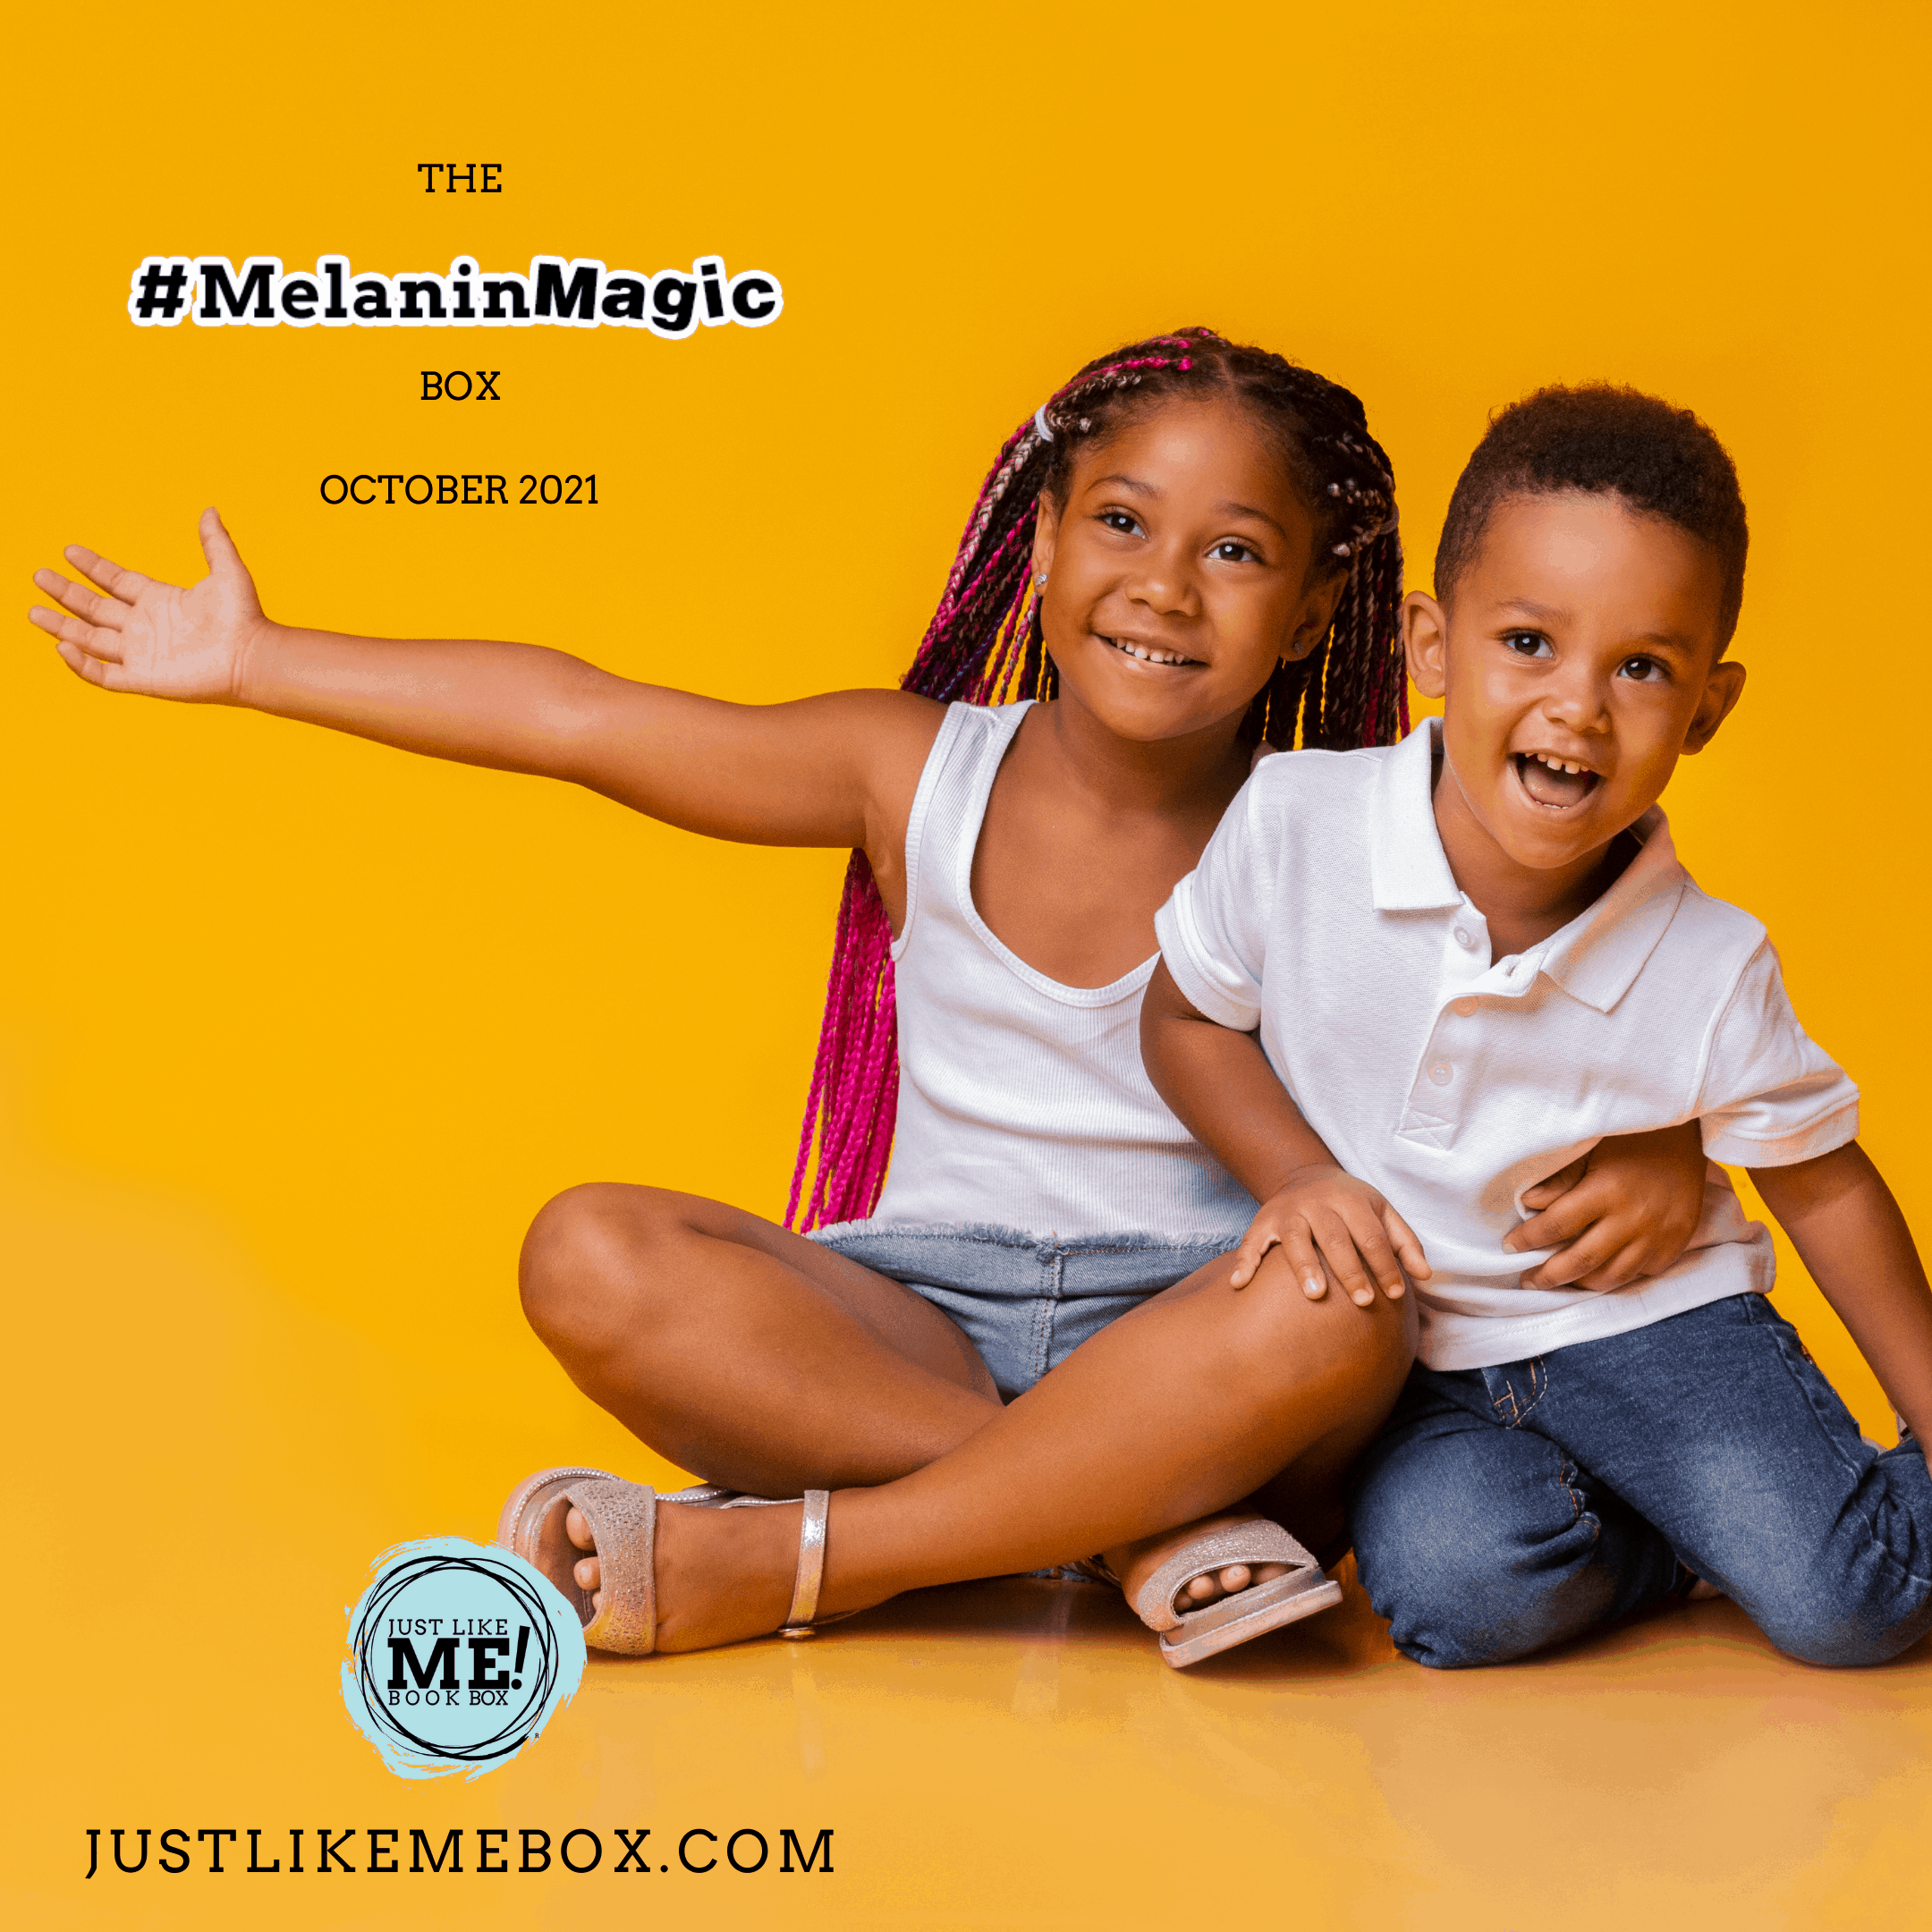 playful siblings on a yellow background the #MelaninMagic box